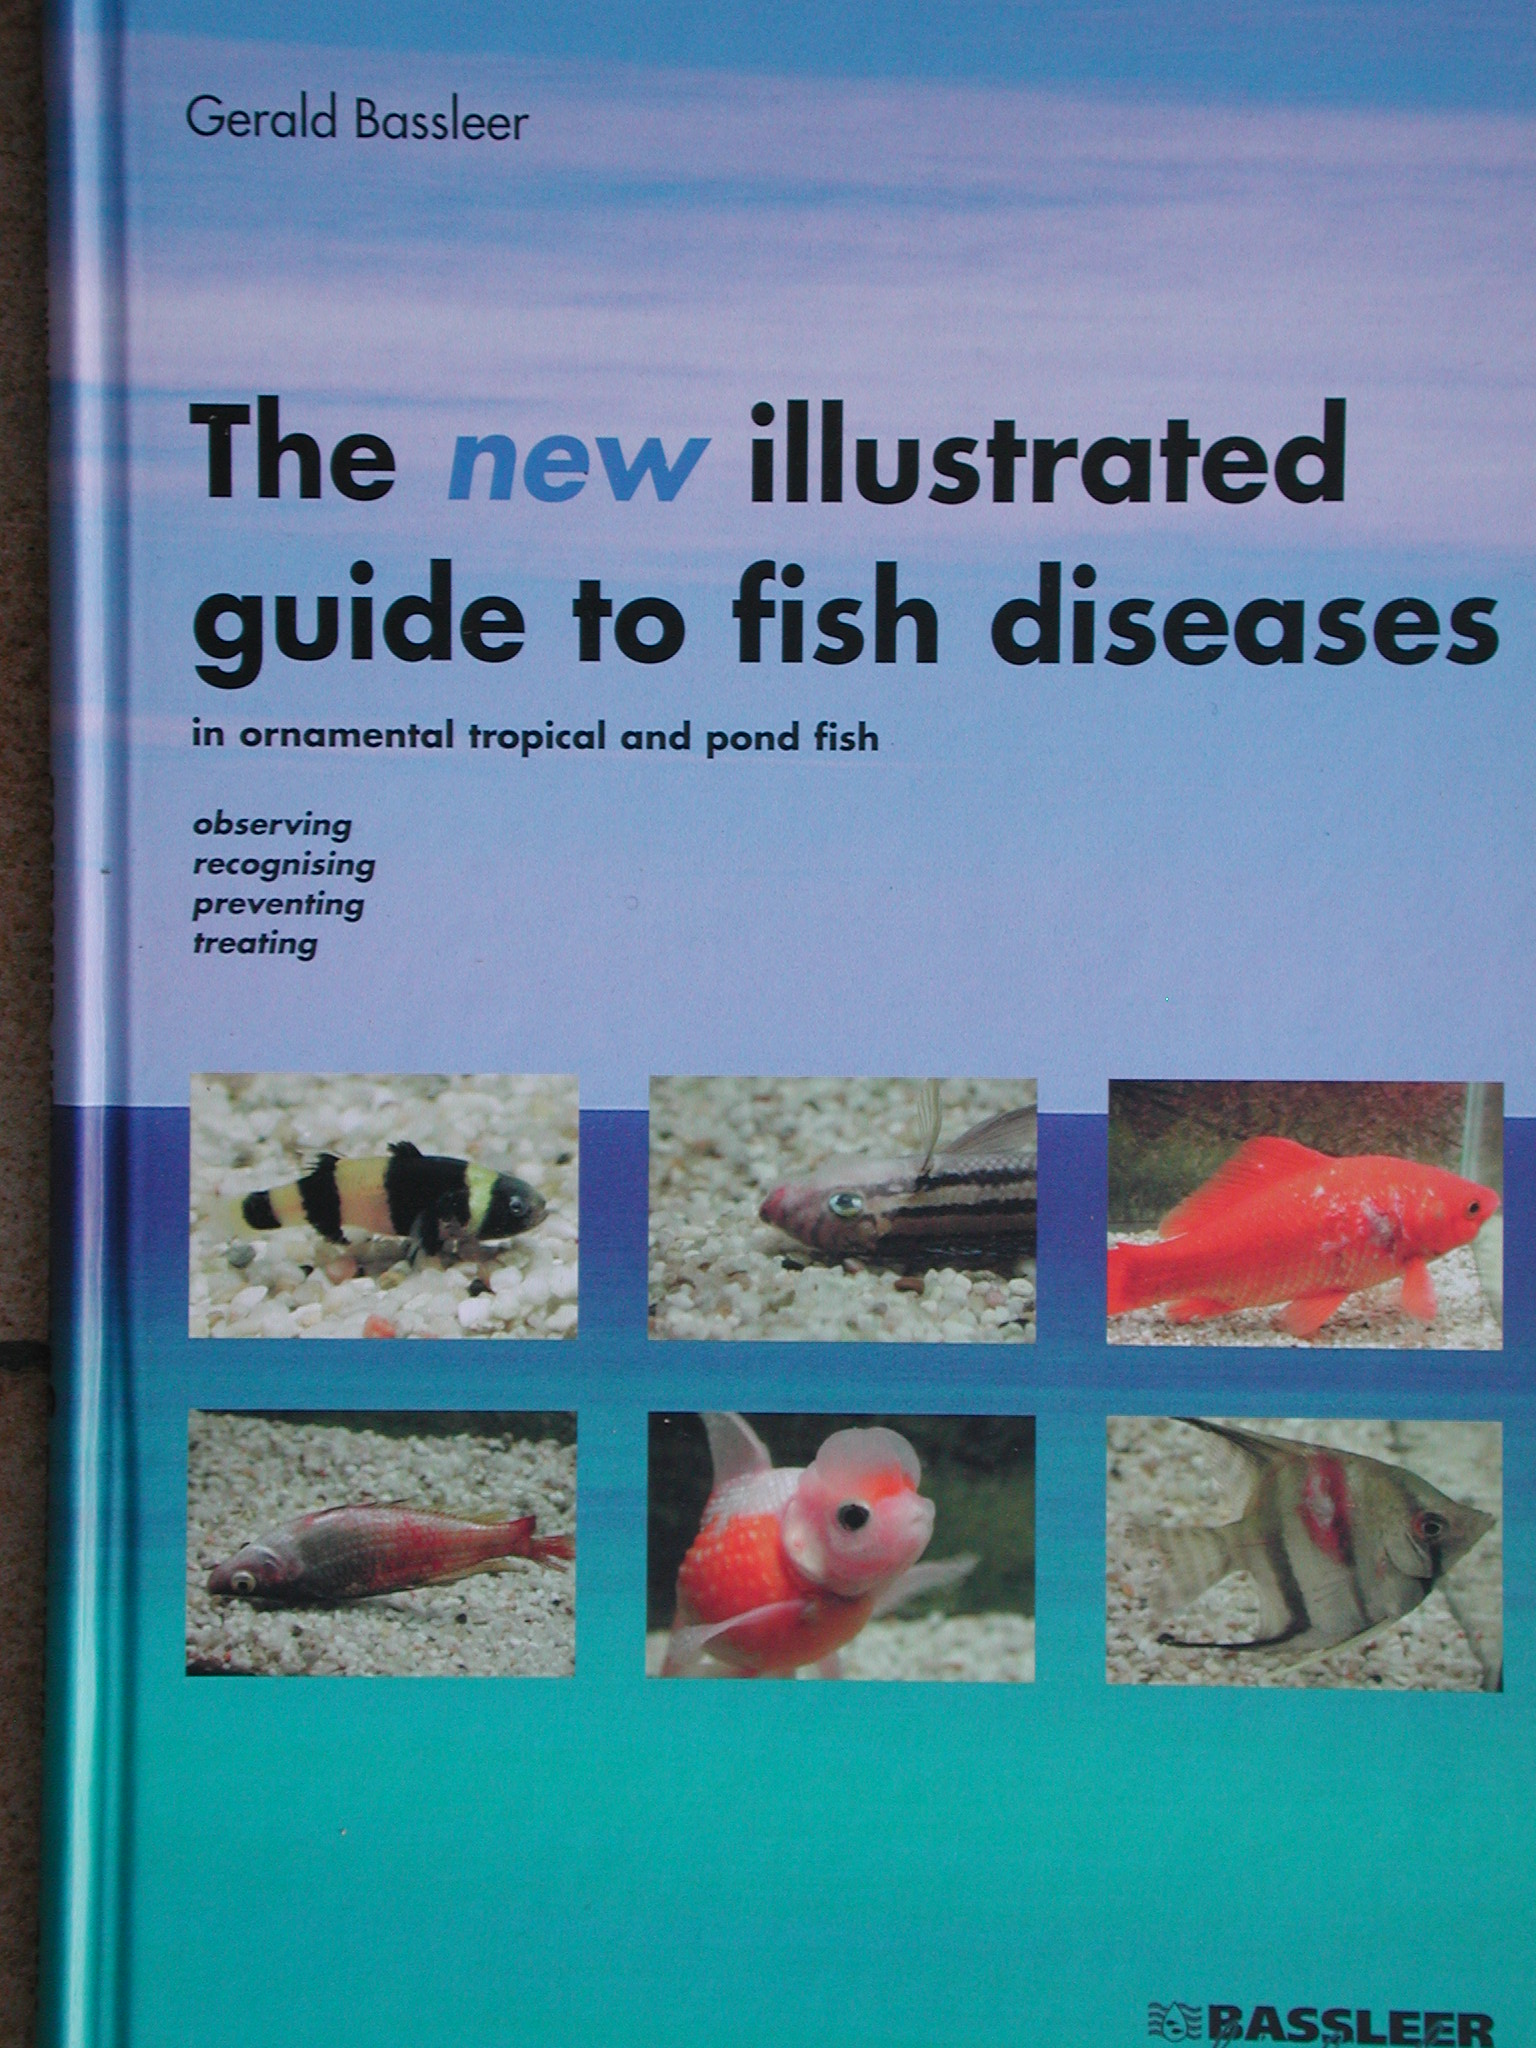 English over of the book The new illustrated guide to fish diseases